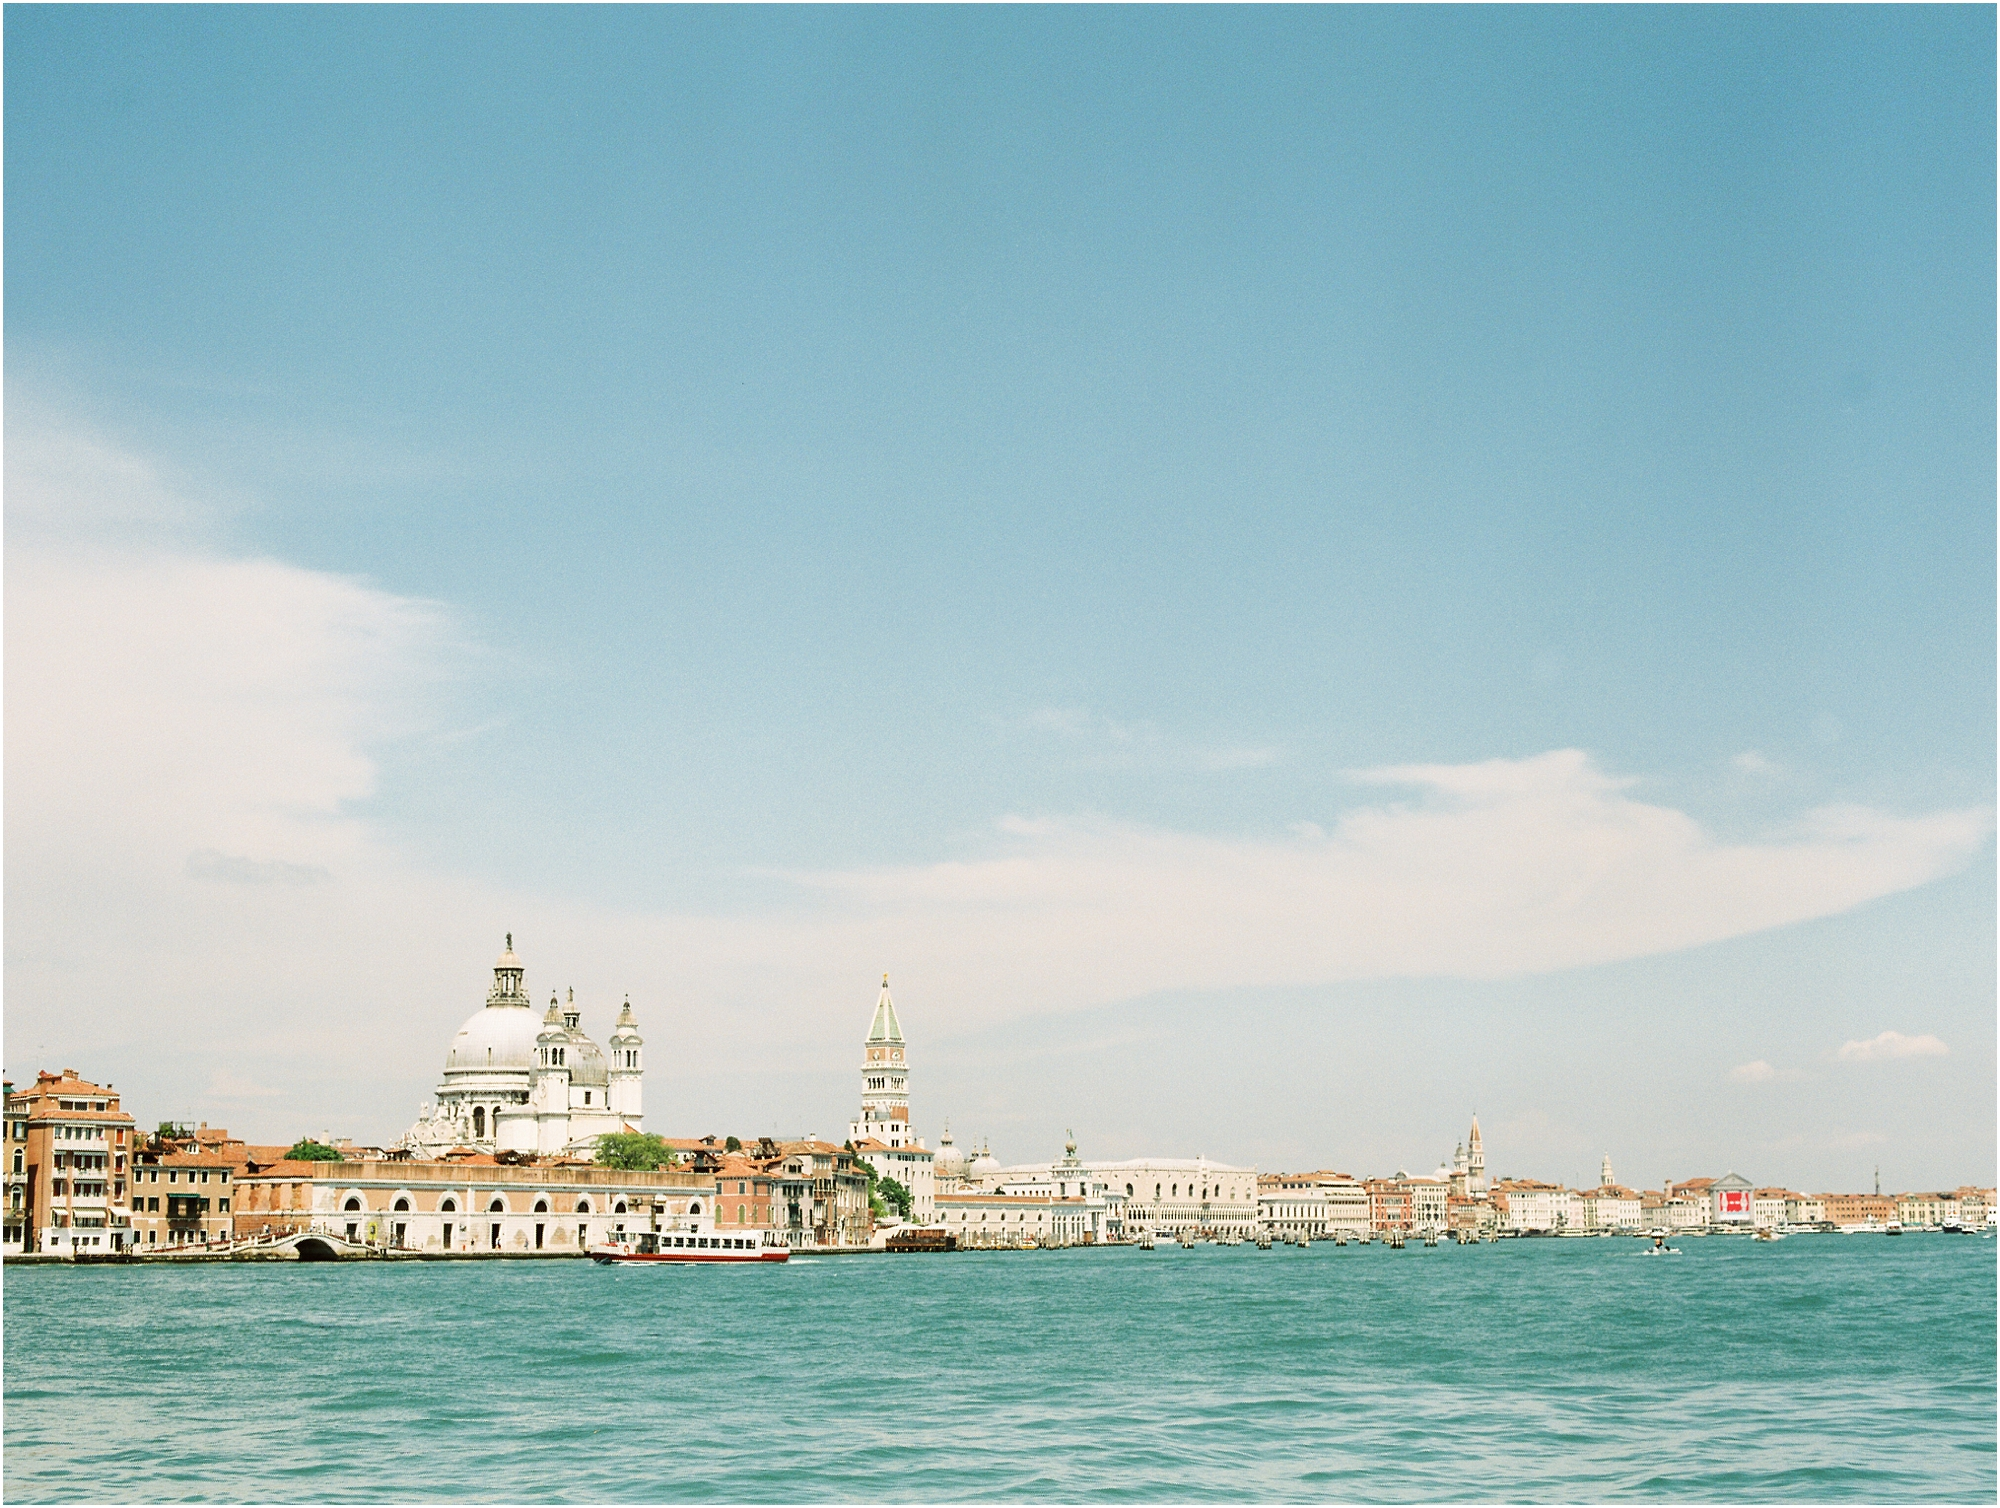 Venice Italy from the water